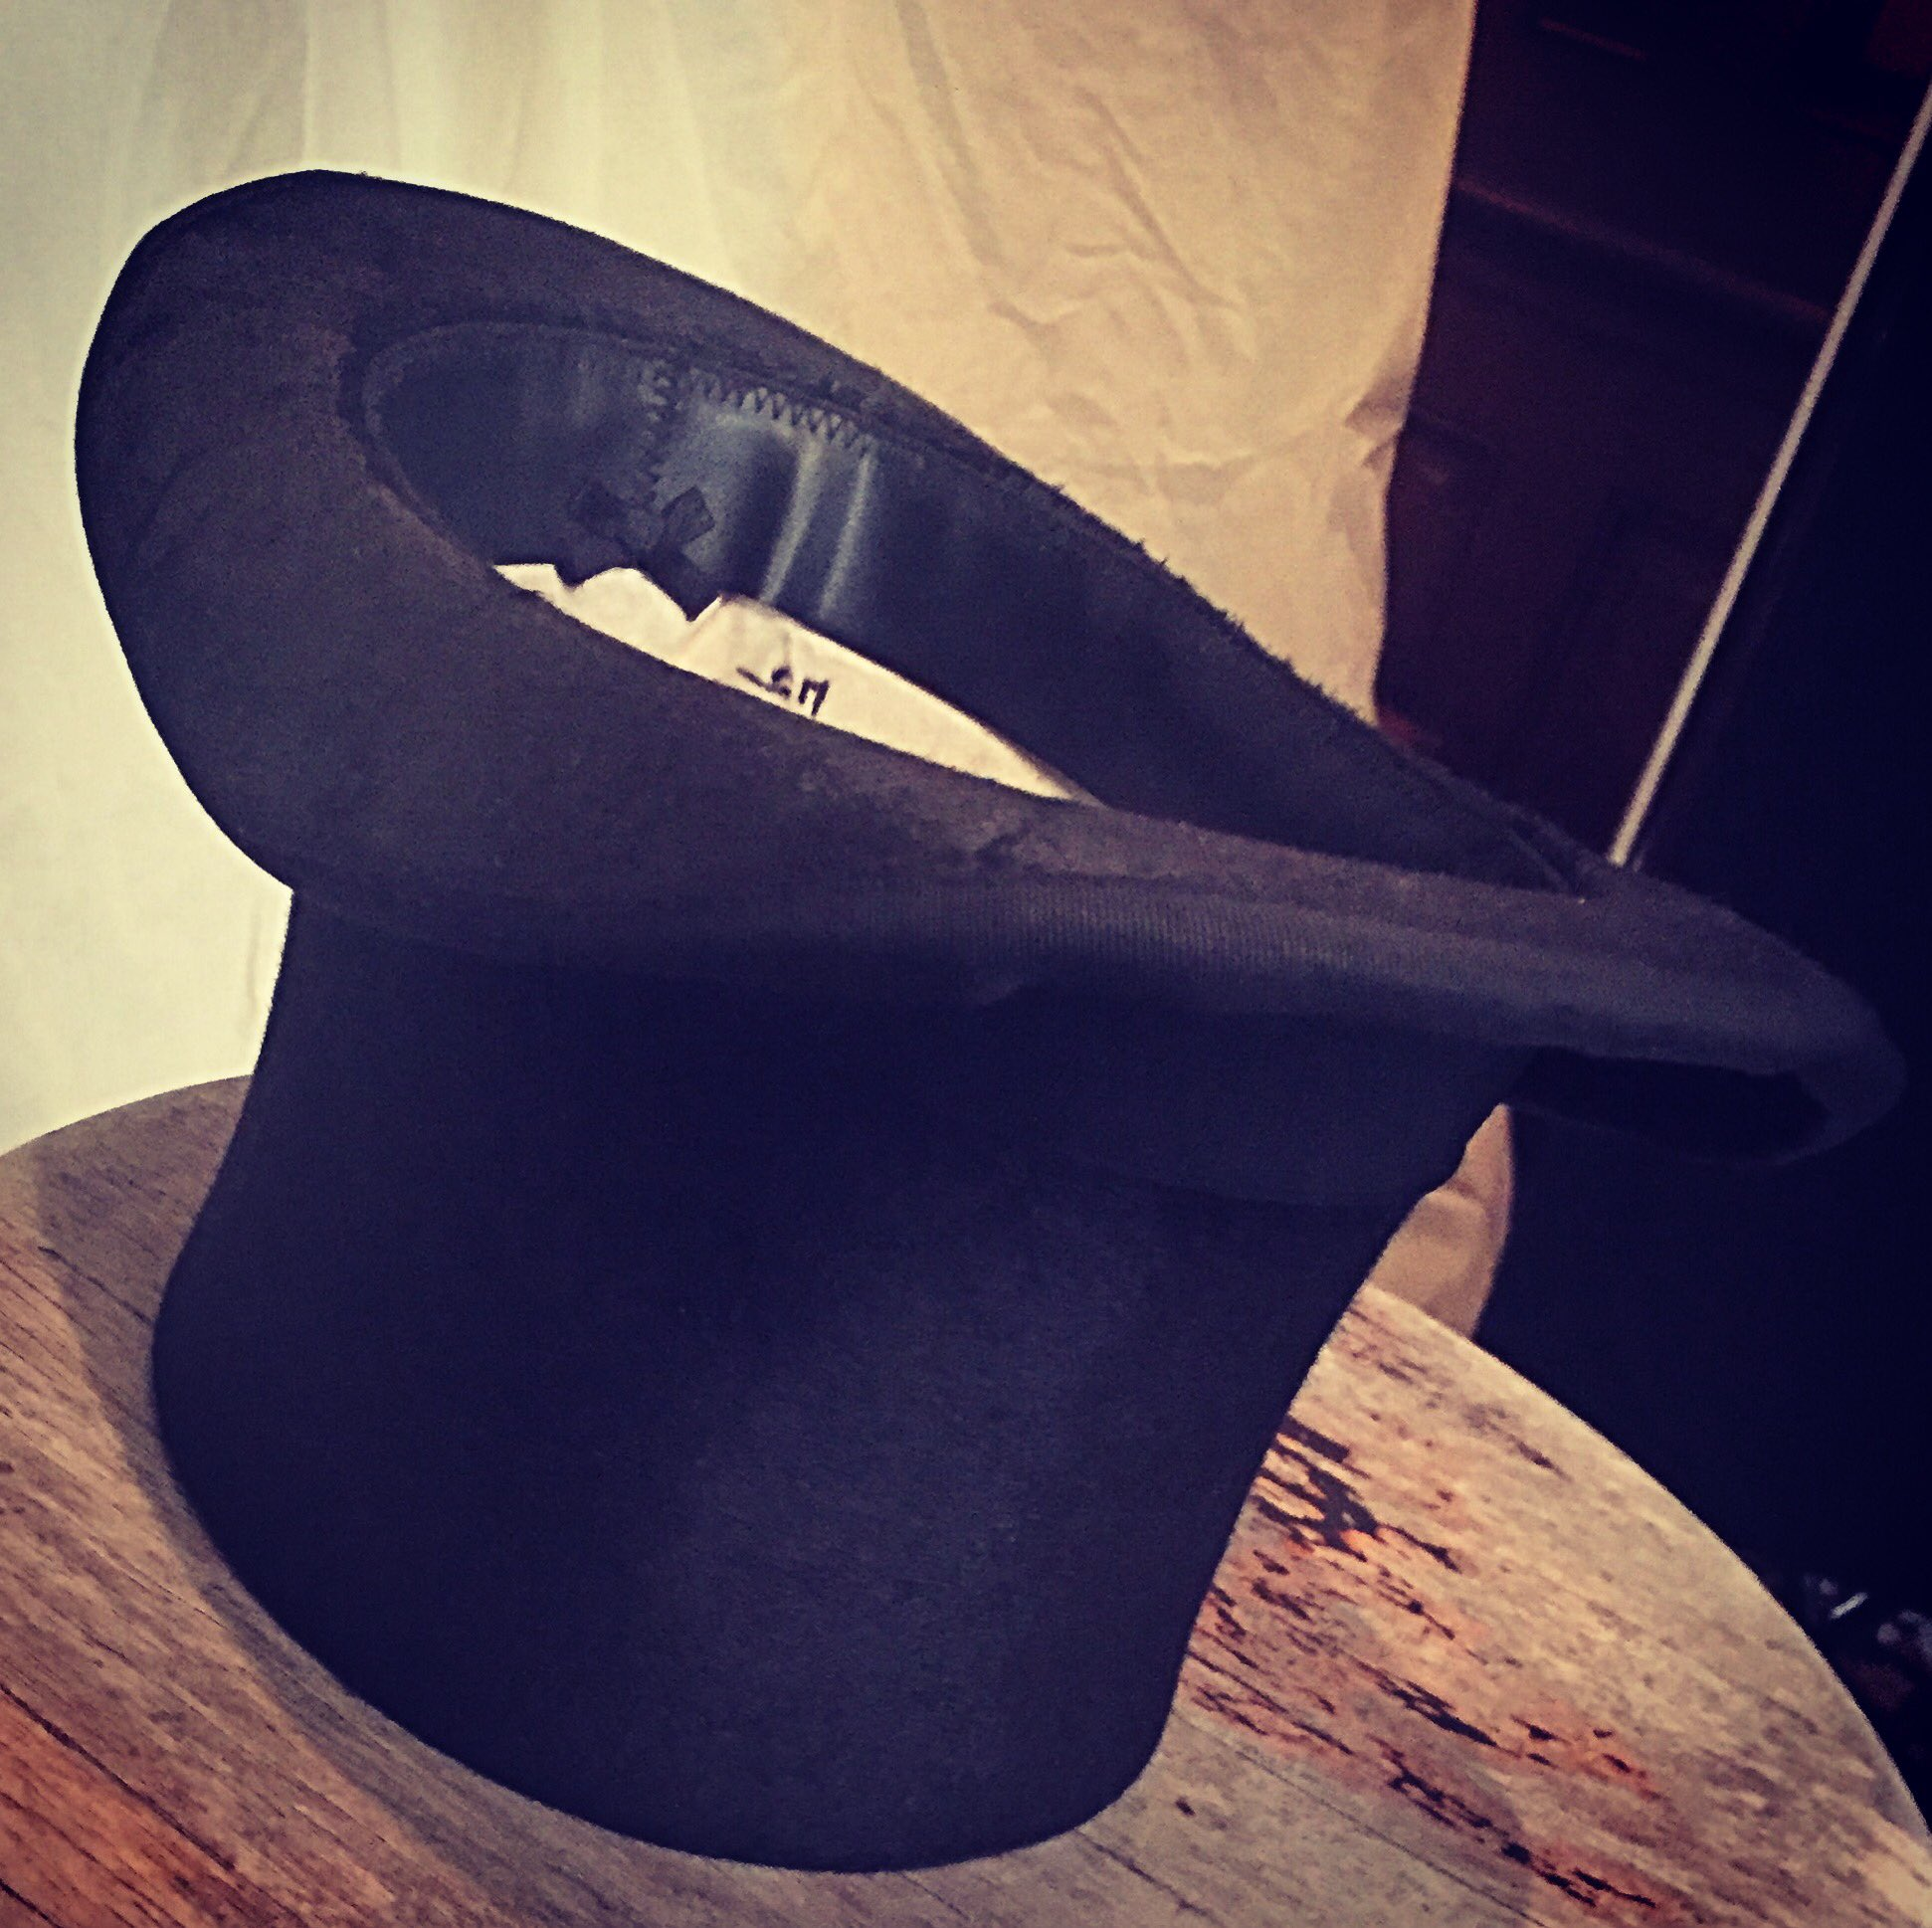 """The proper way to """"rest"""" your (top) hat is like this ... so your luck doesn't run out. @GreatestShowman 🎩 https://t.co/vmKDsIEGVl"""